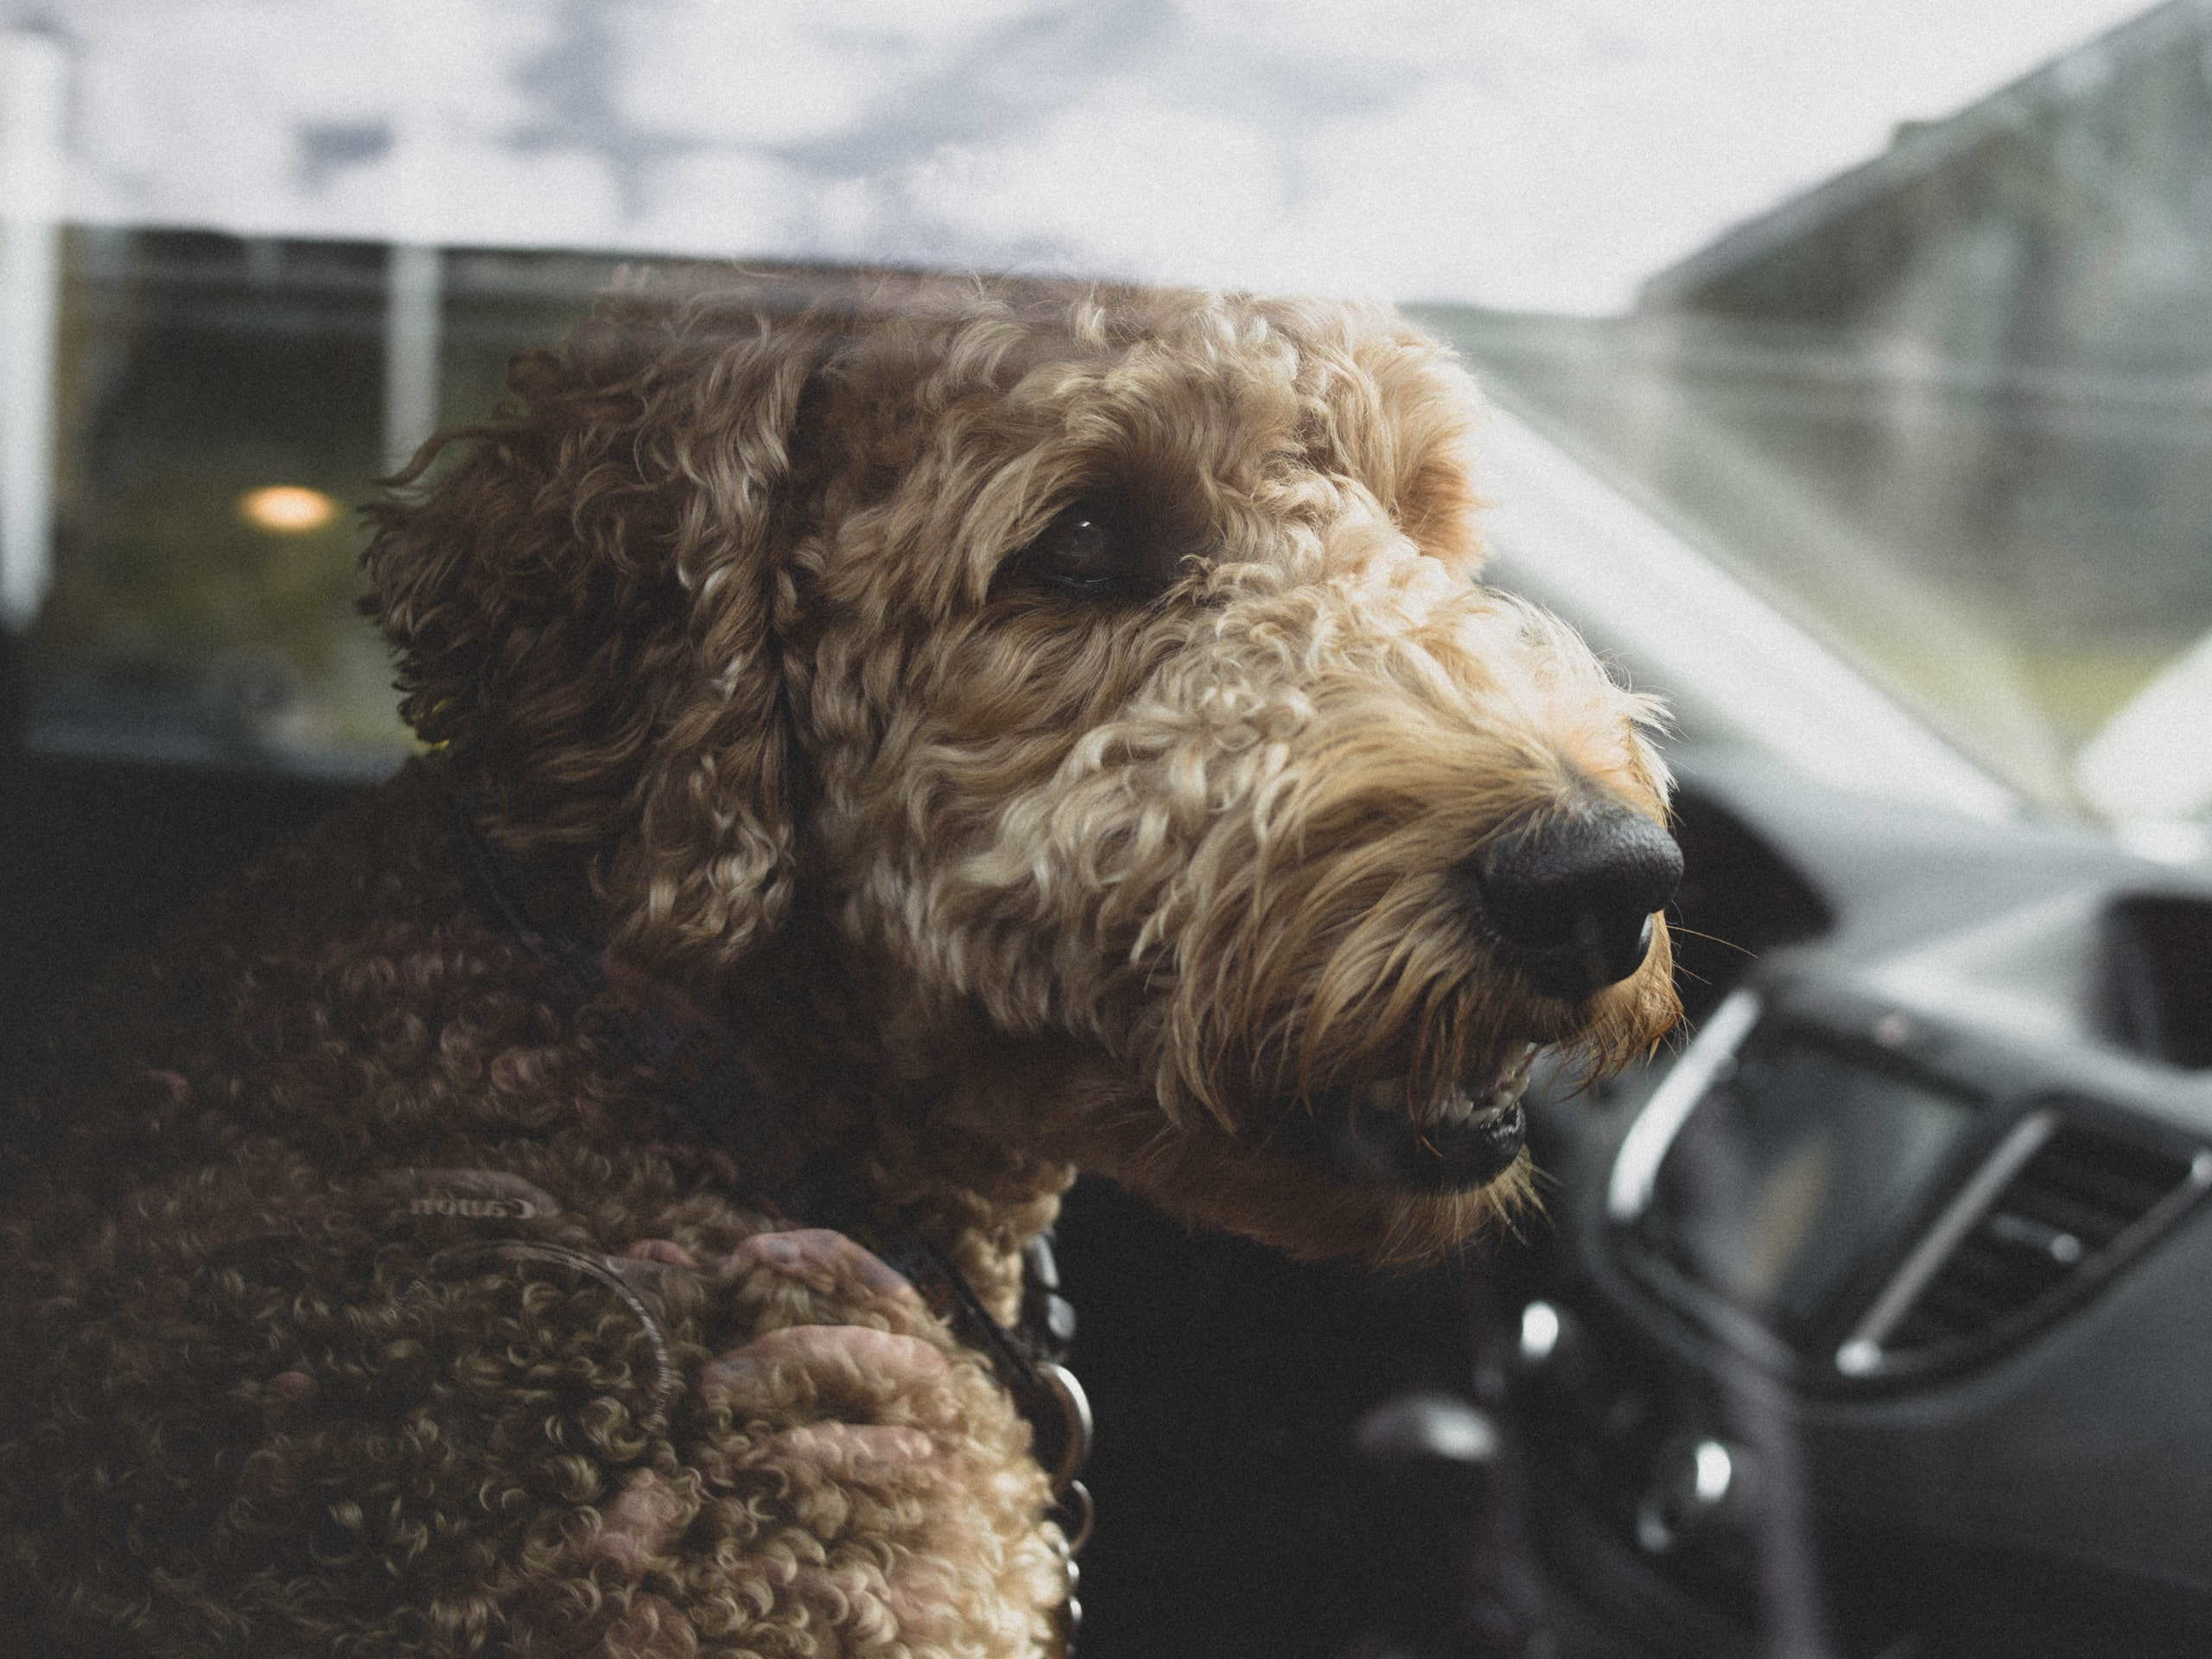 Goldendoodle riding in a car